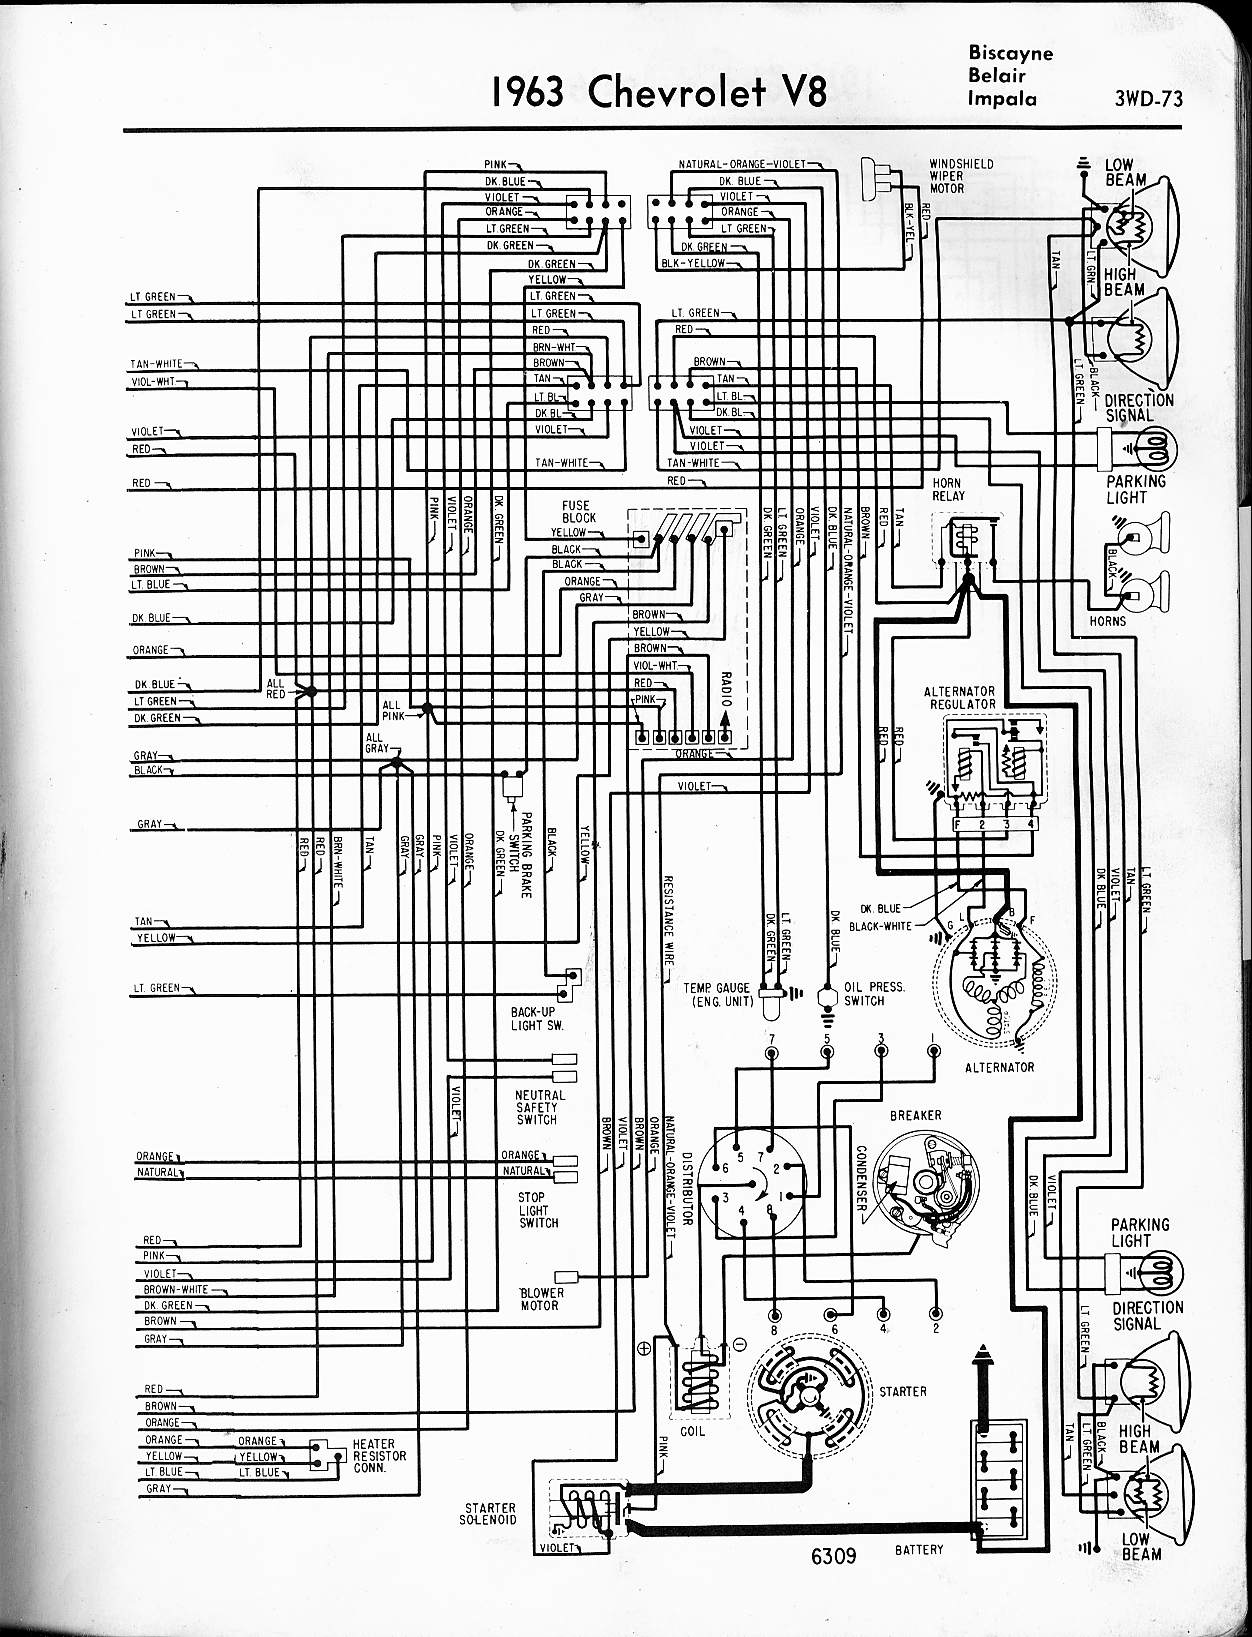 hight resolution of 57 65 chevy wiring diagrams 2006 chevy impala wiring diagram 1963 v8 biscayne belair